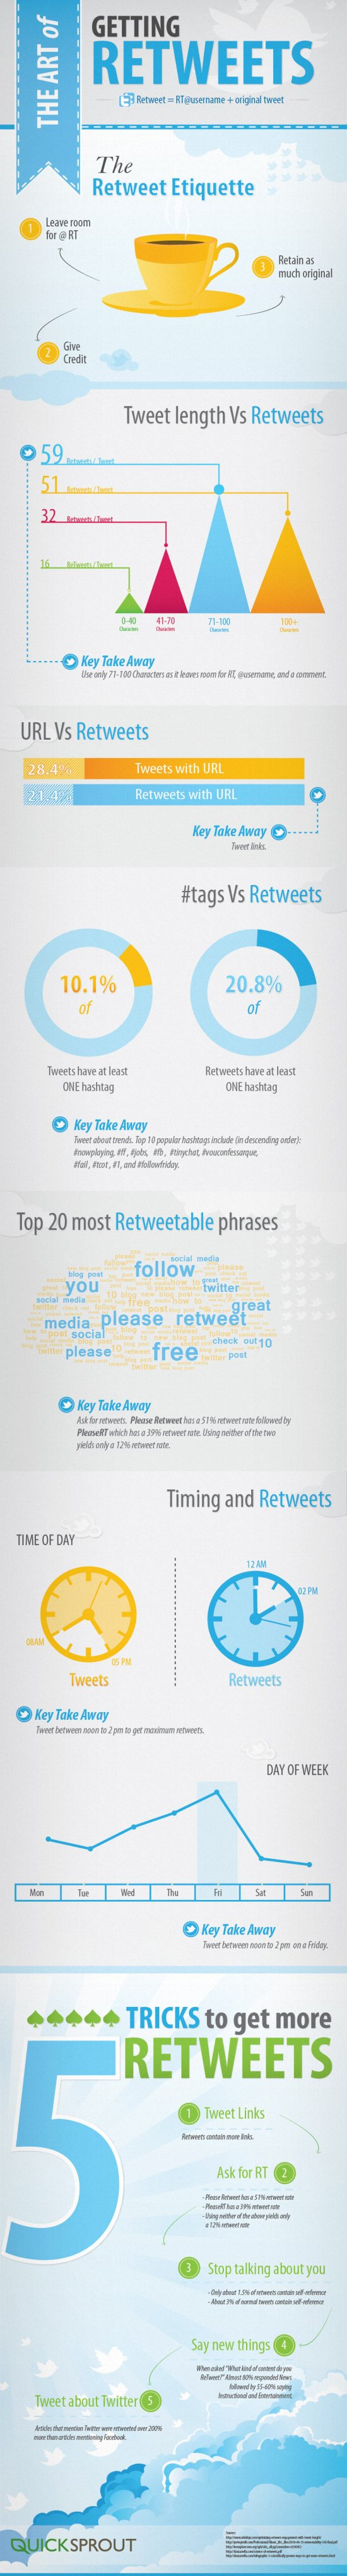 The Art of Getting Retweets and Followers